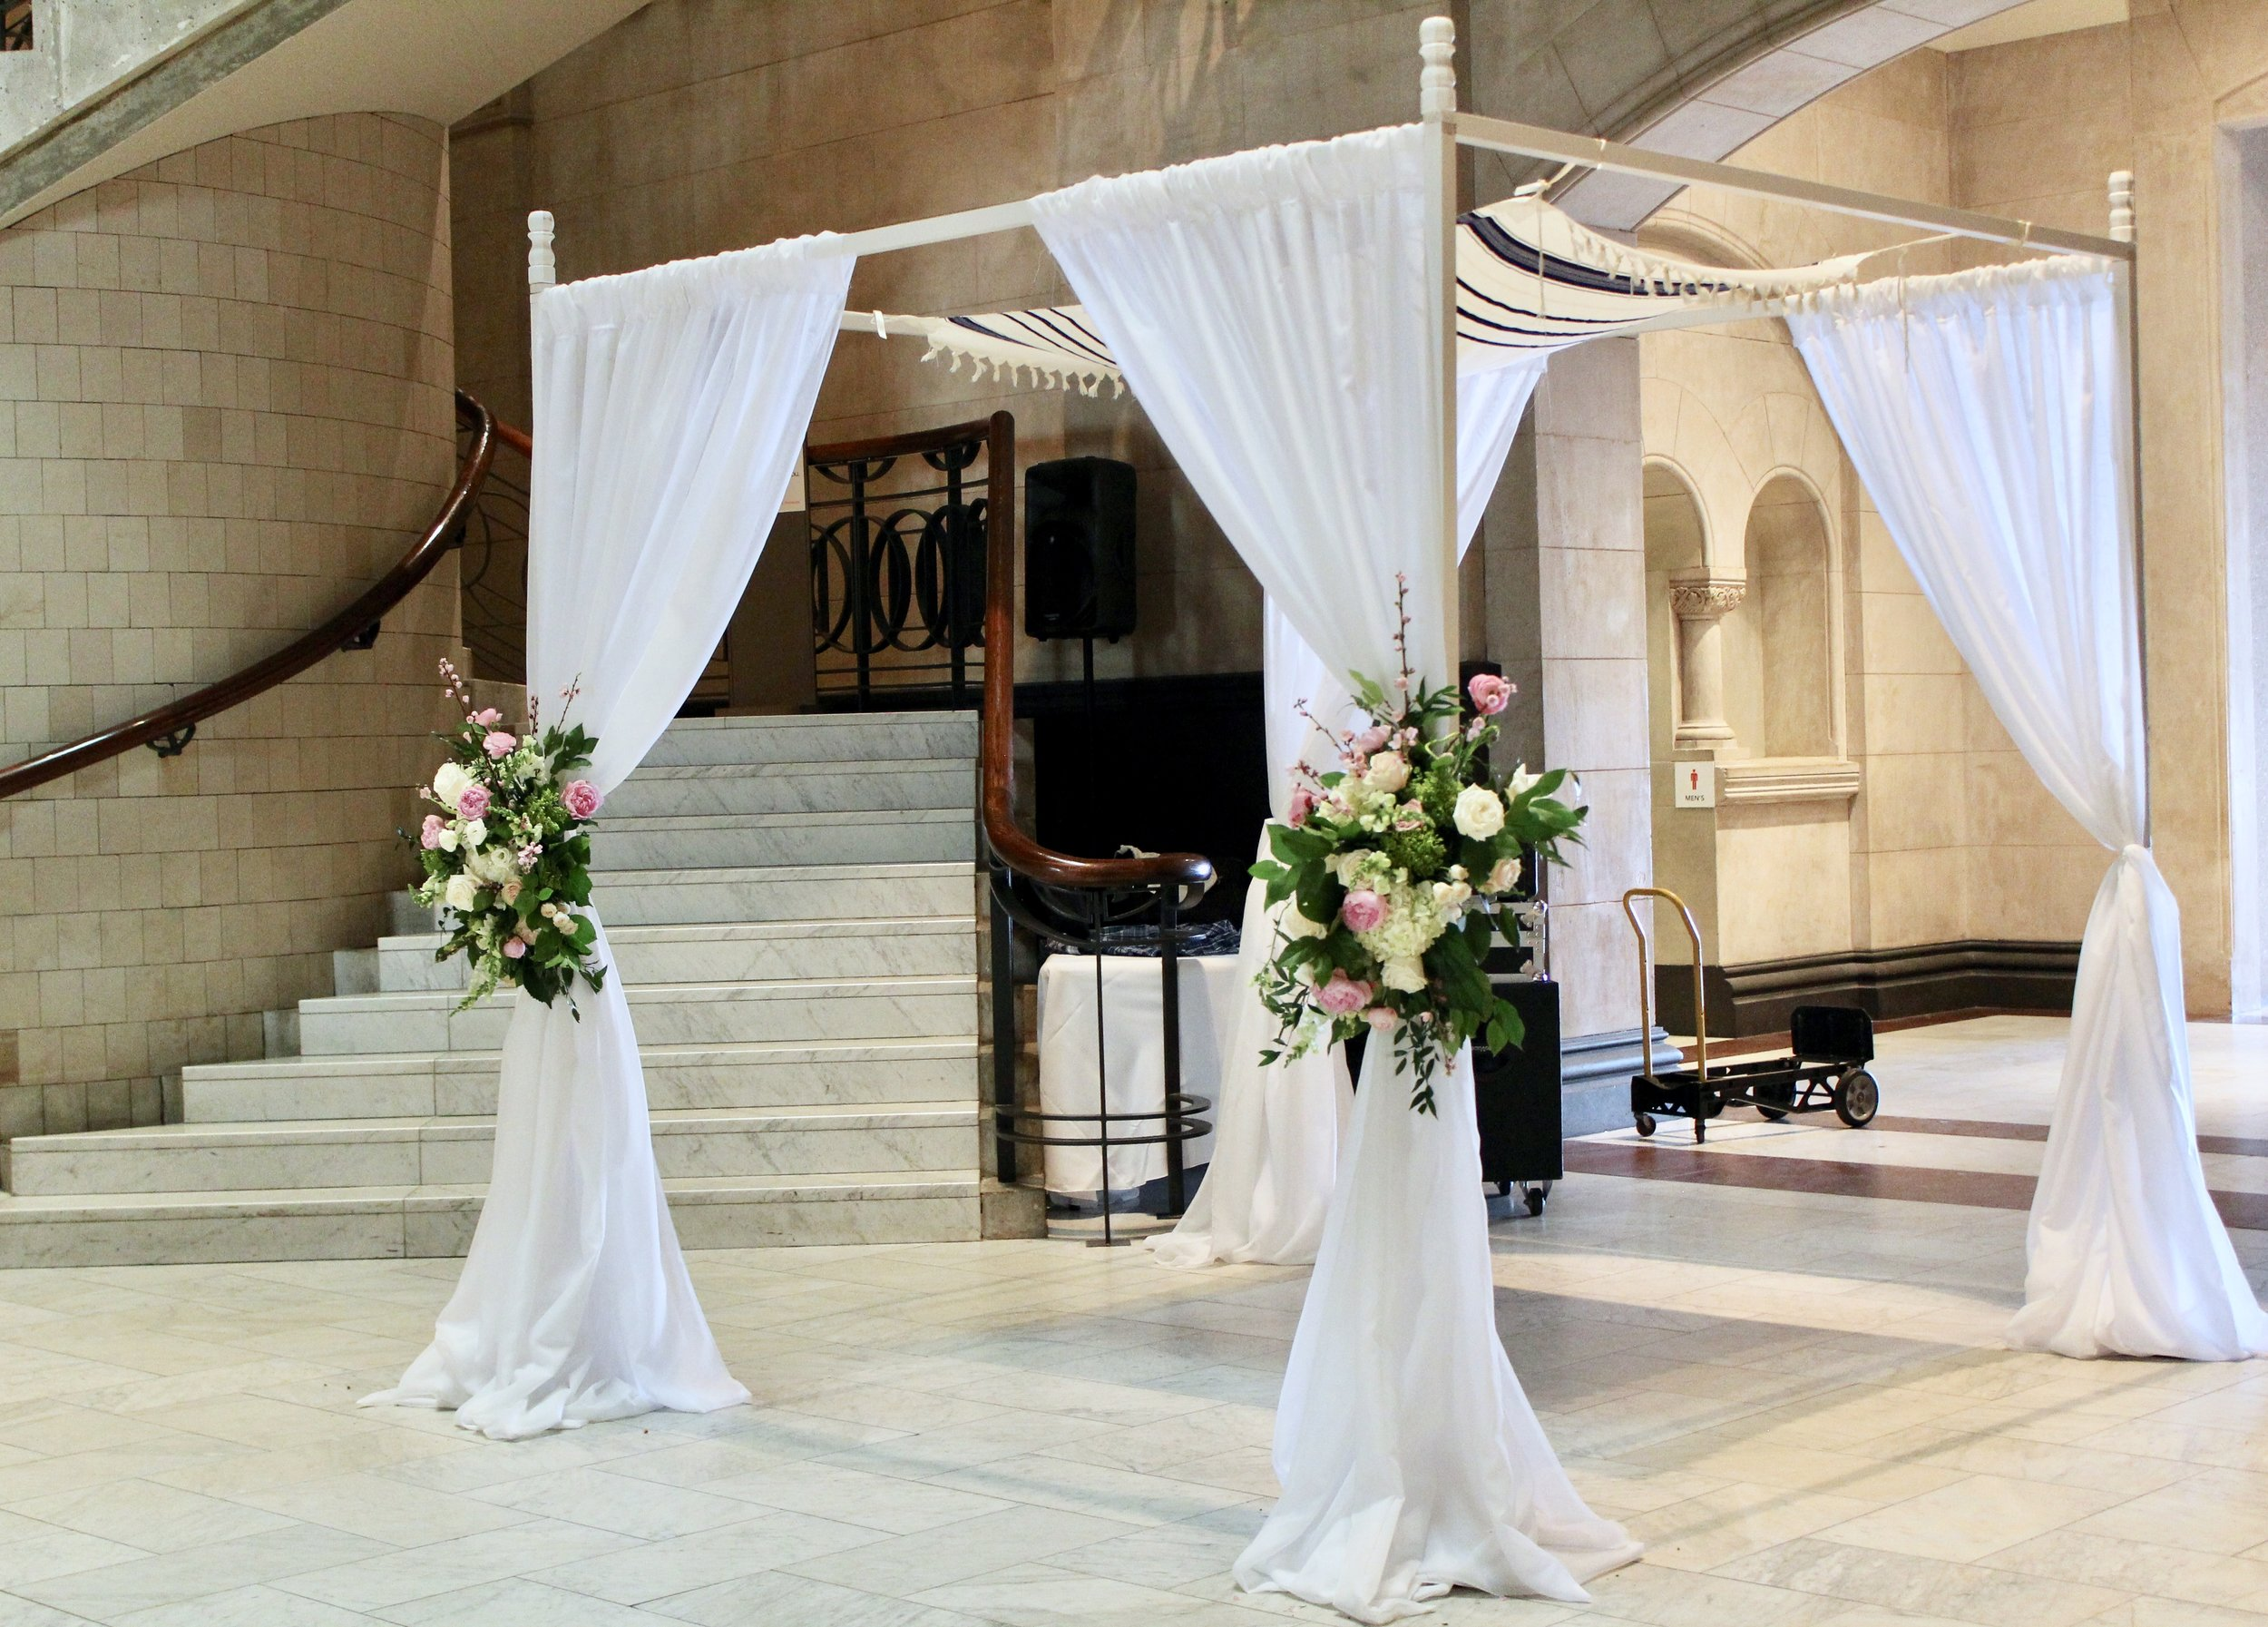 Chuppah for spring wedding at Cincinnati Art Museum by Yellow Canary Floral Design